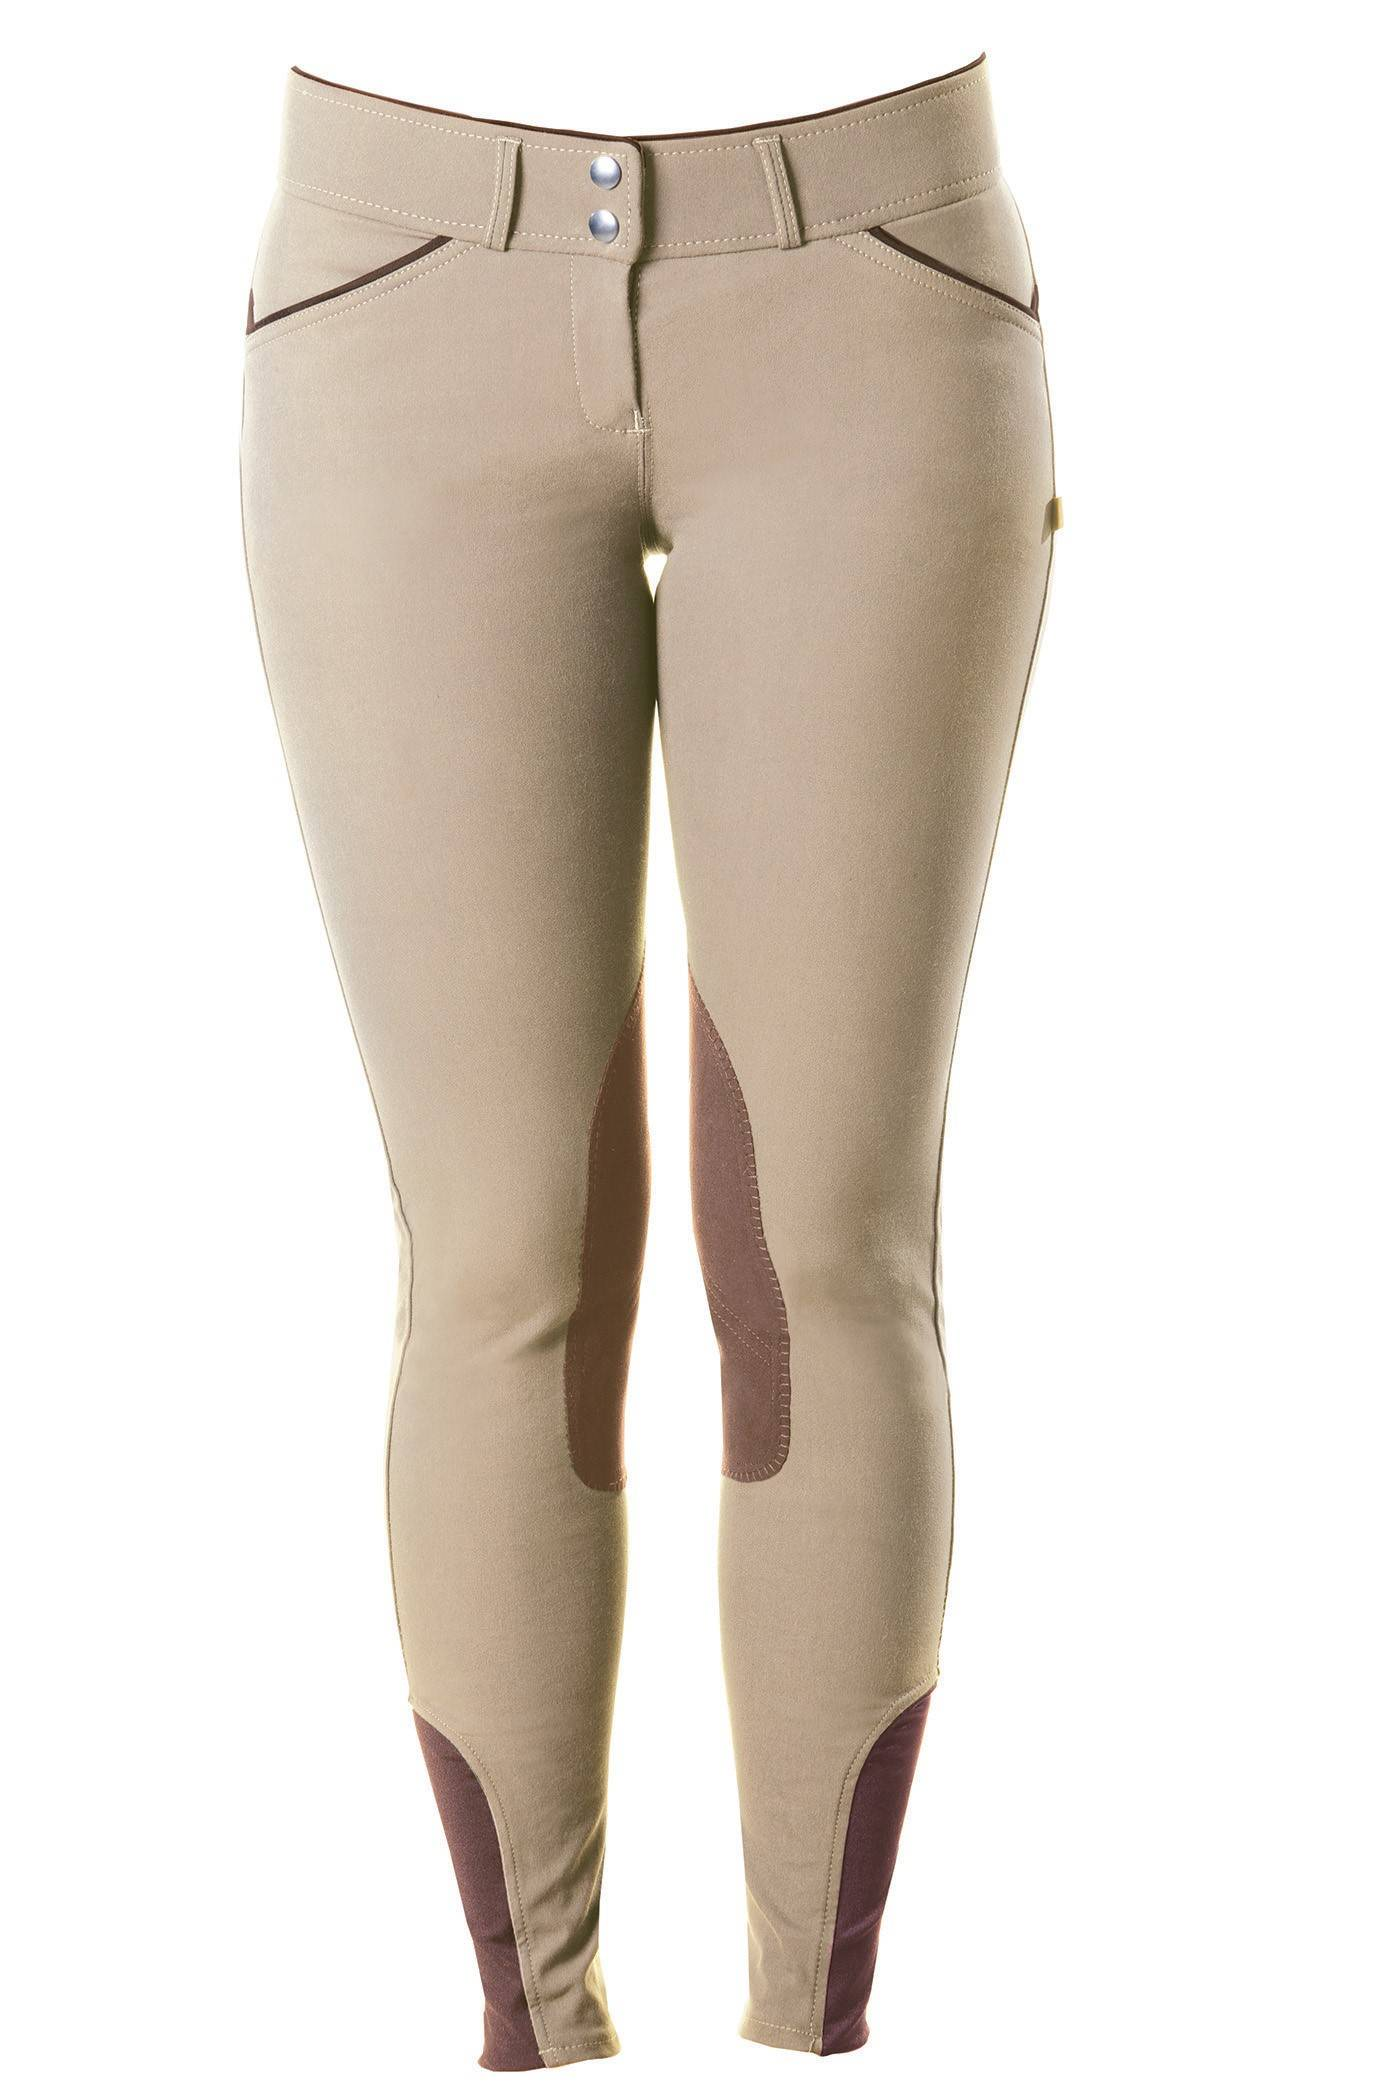 Devon Aire Ladies' Signature Woven Euroseat Breech